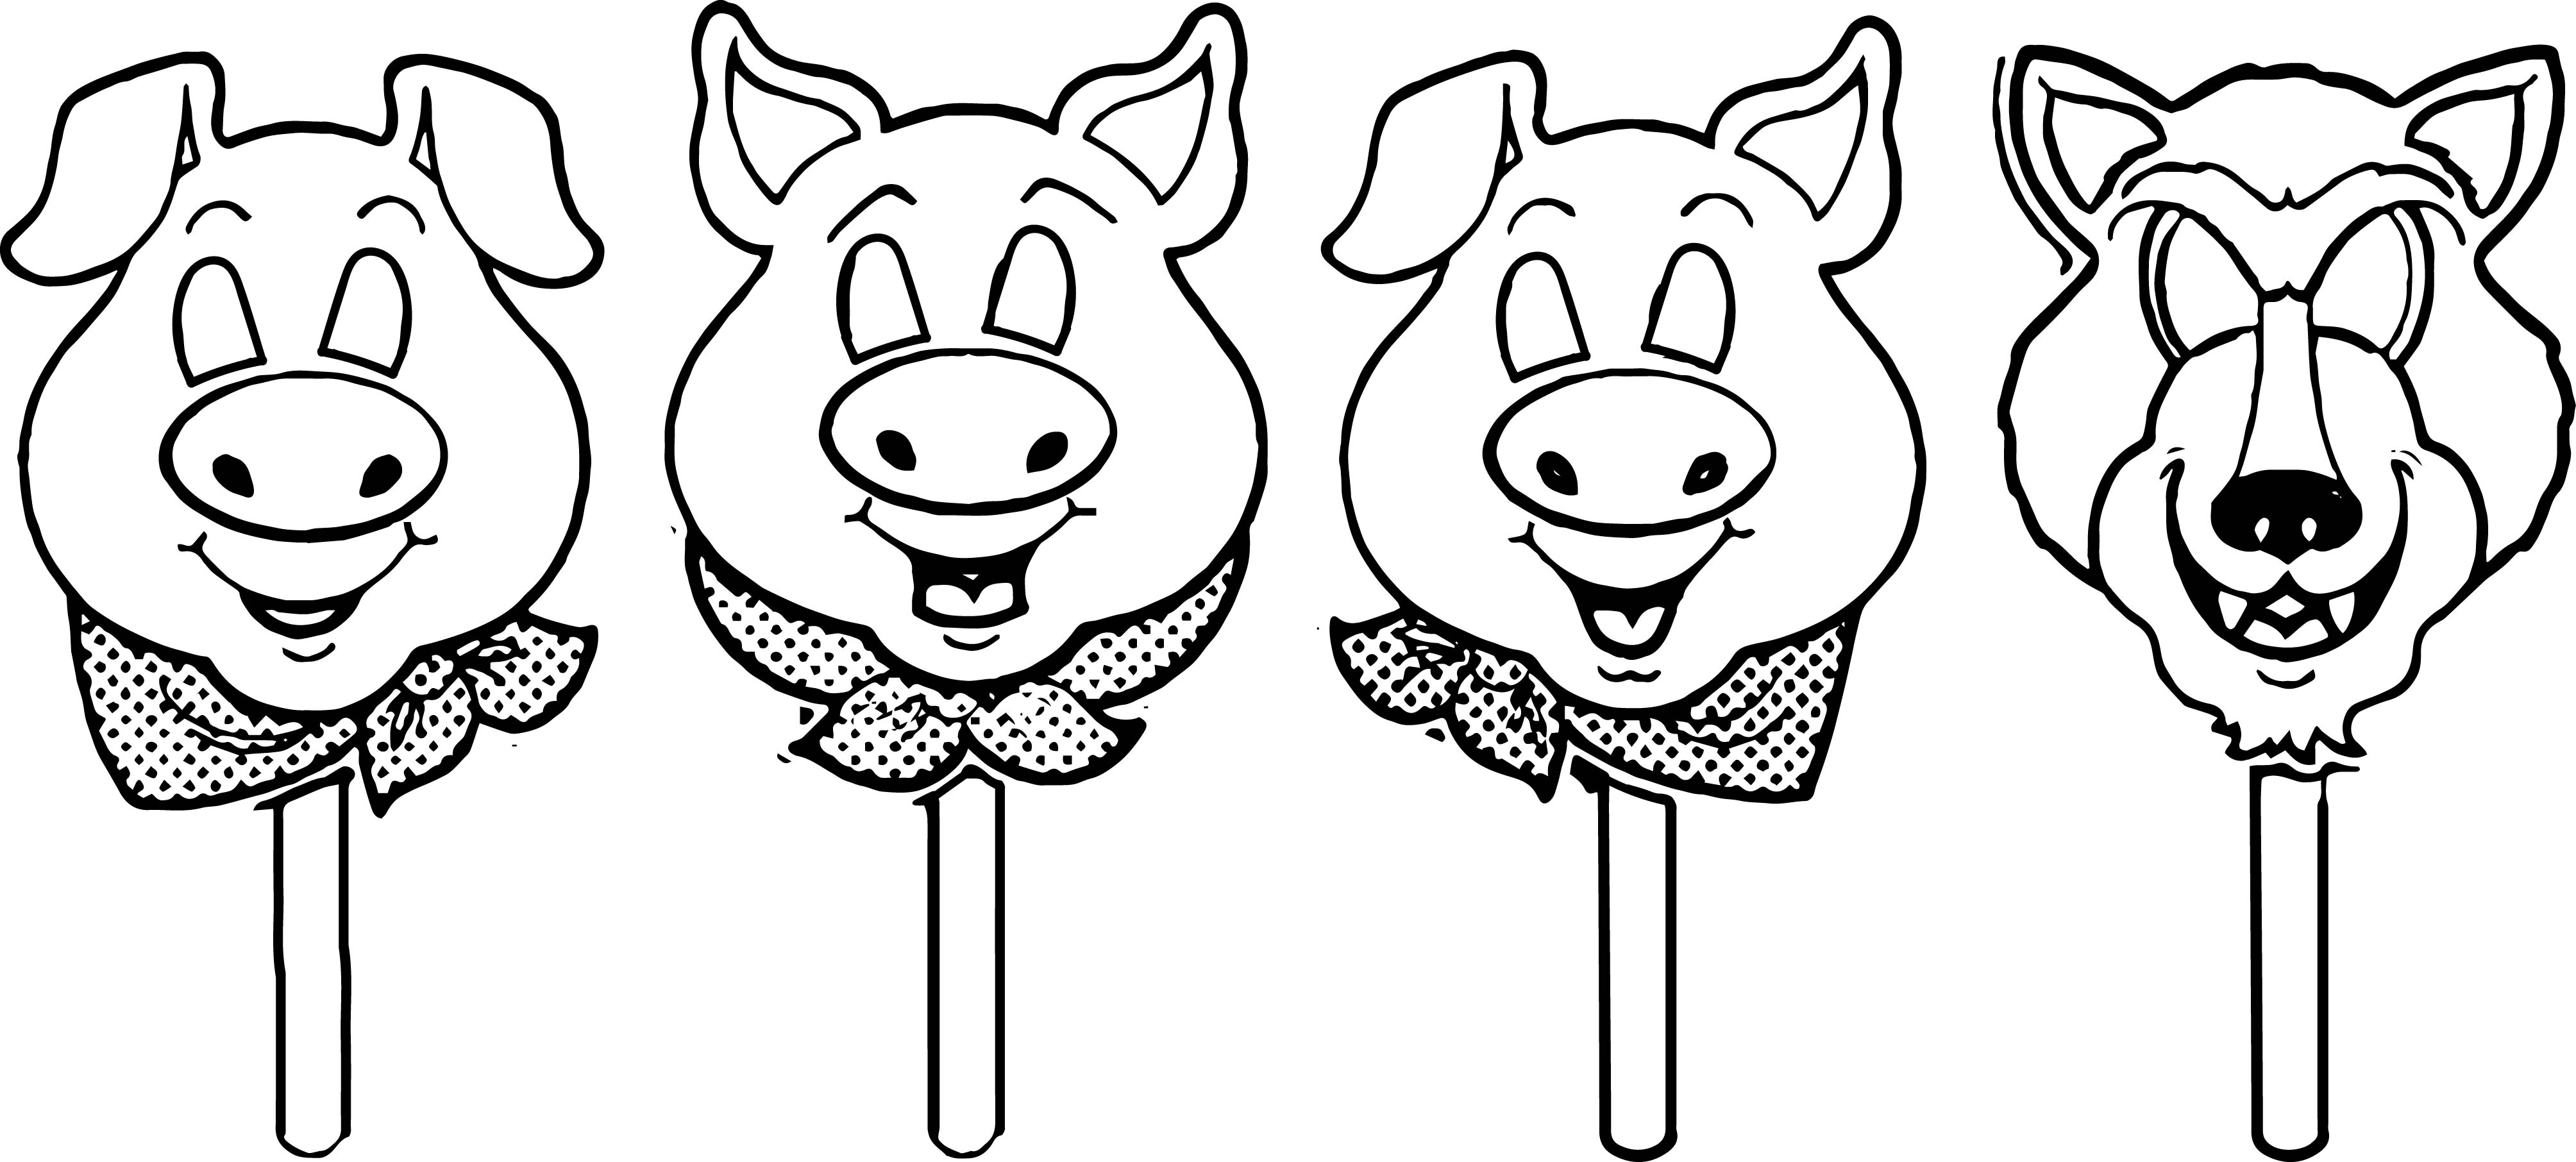 Coloring pages 3 little pigs - 3 Little Pigs Mask Template Coloring Page